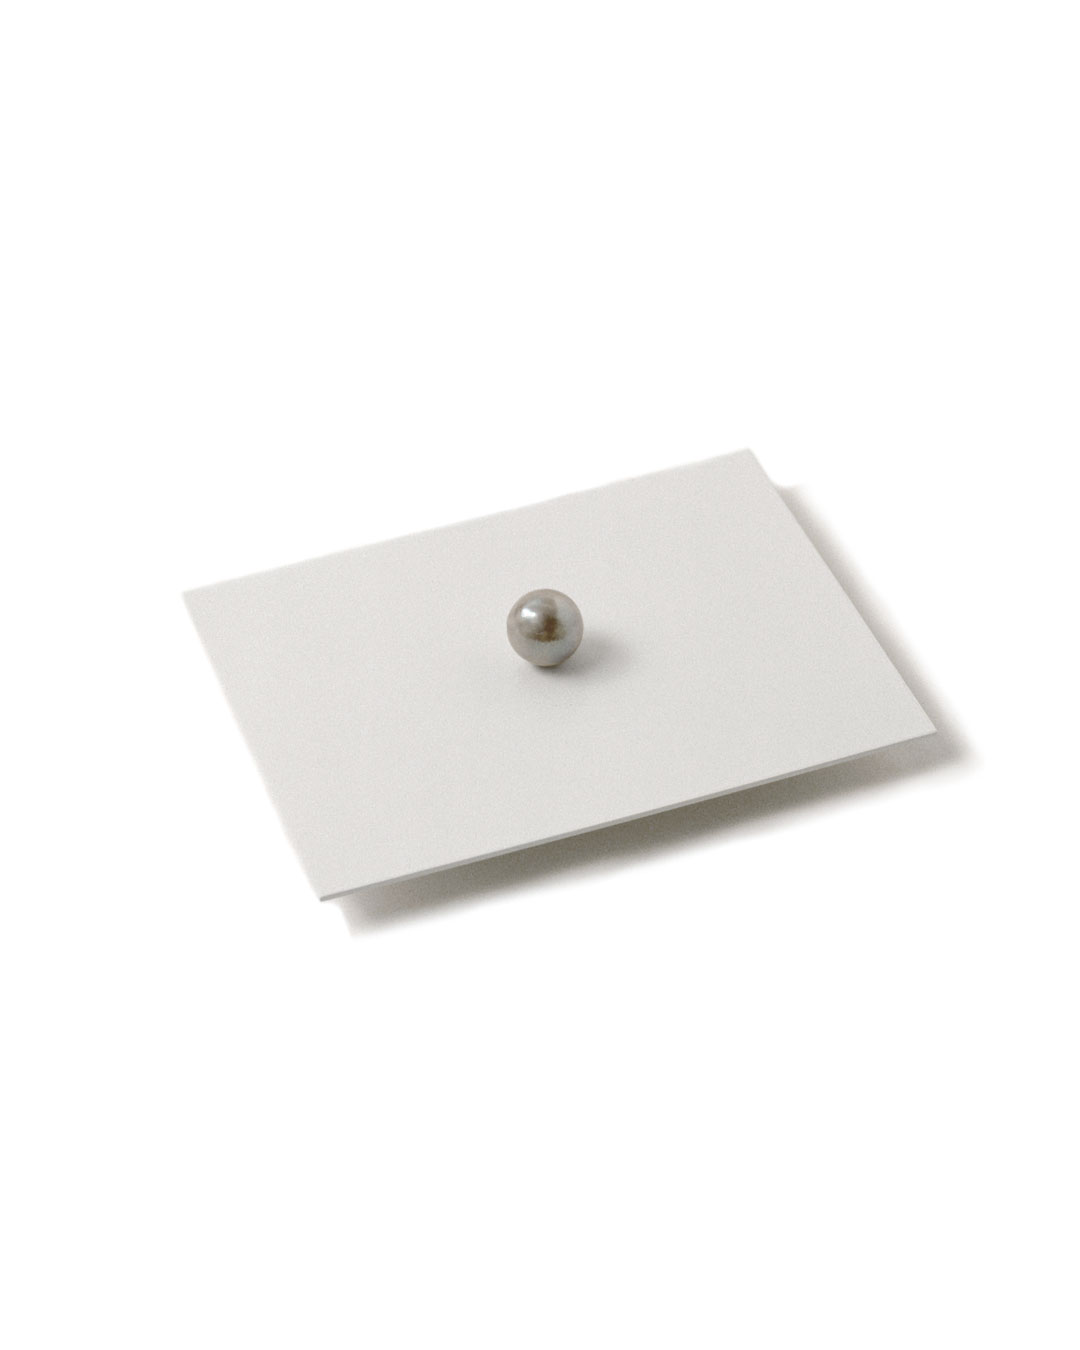 Otto Künzli, Ago Bay, 2009, brooch; pearl, silver, acrylic paint, stainless steel , 77 x 64 x 17 mm (edition 1), €5100